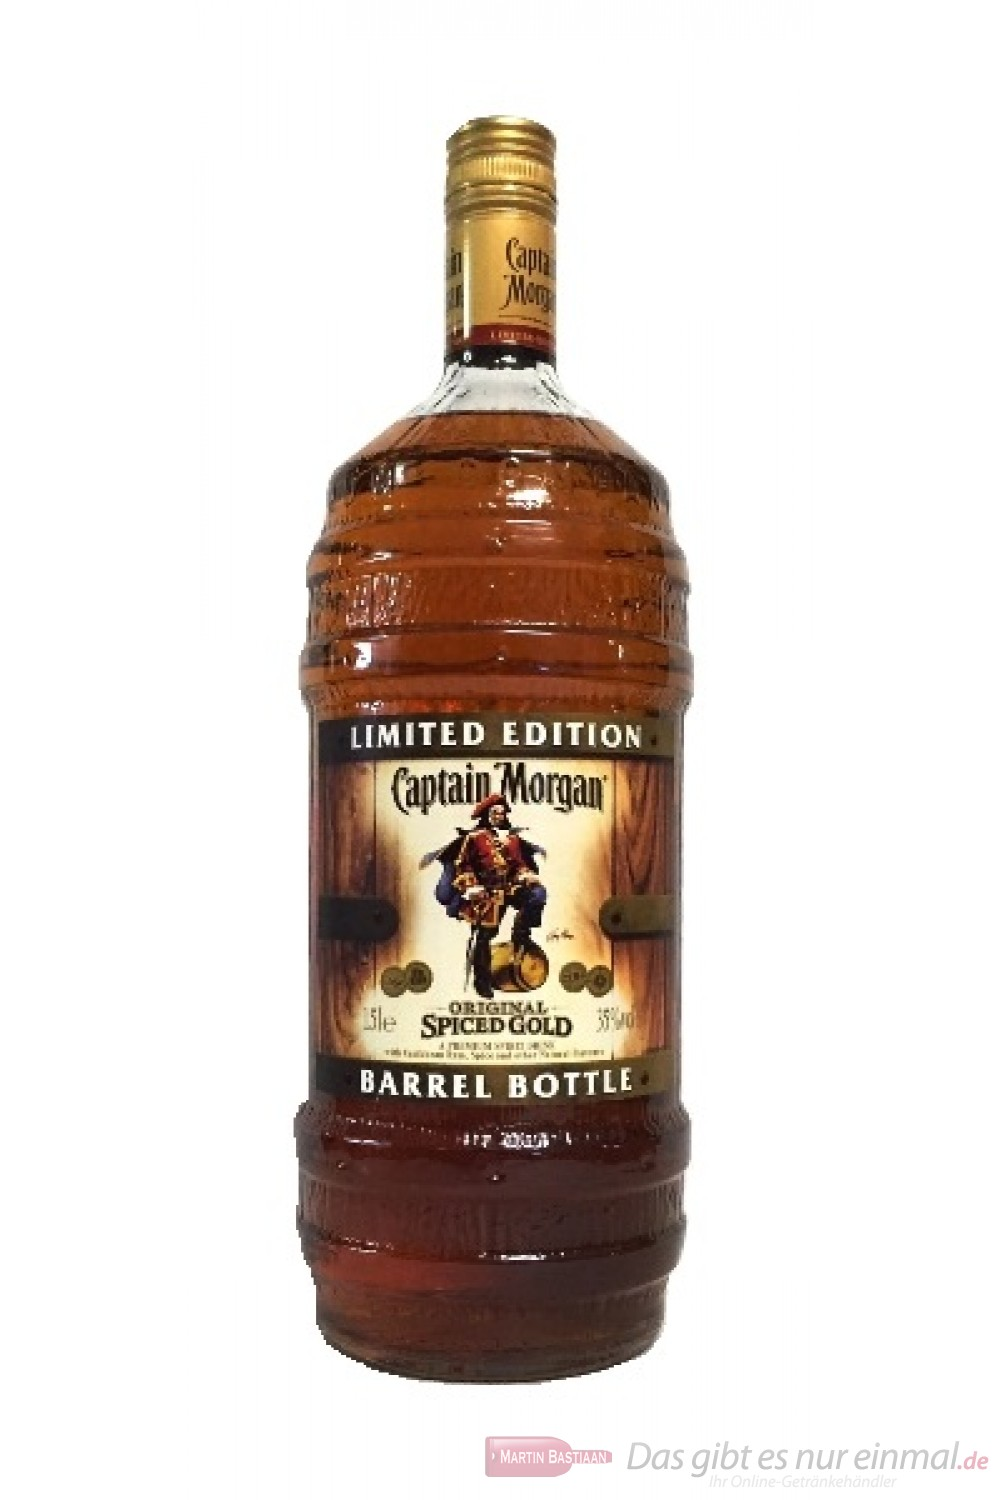 Captain Morgan Barrel Bottle